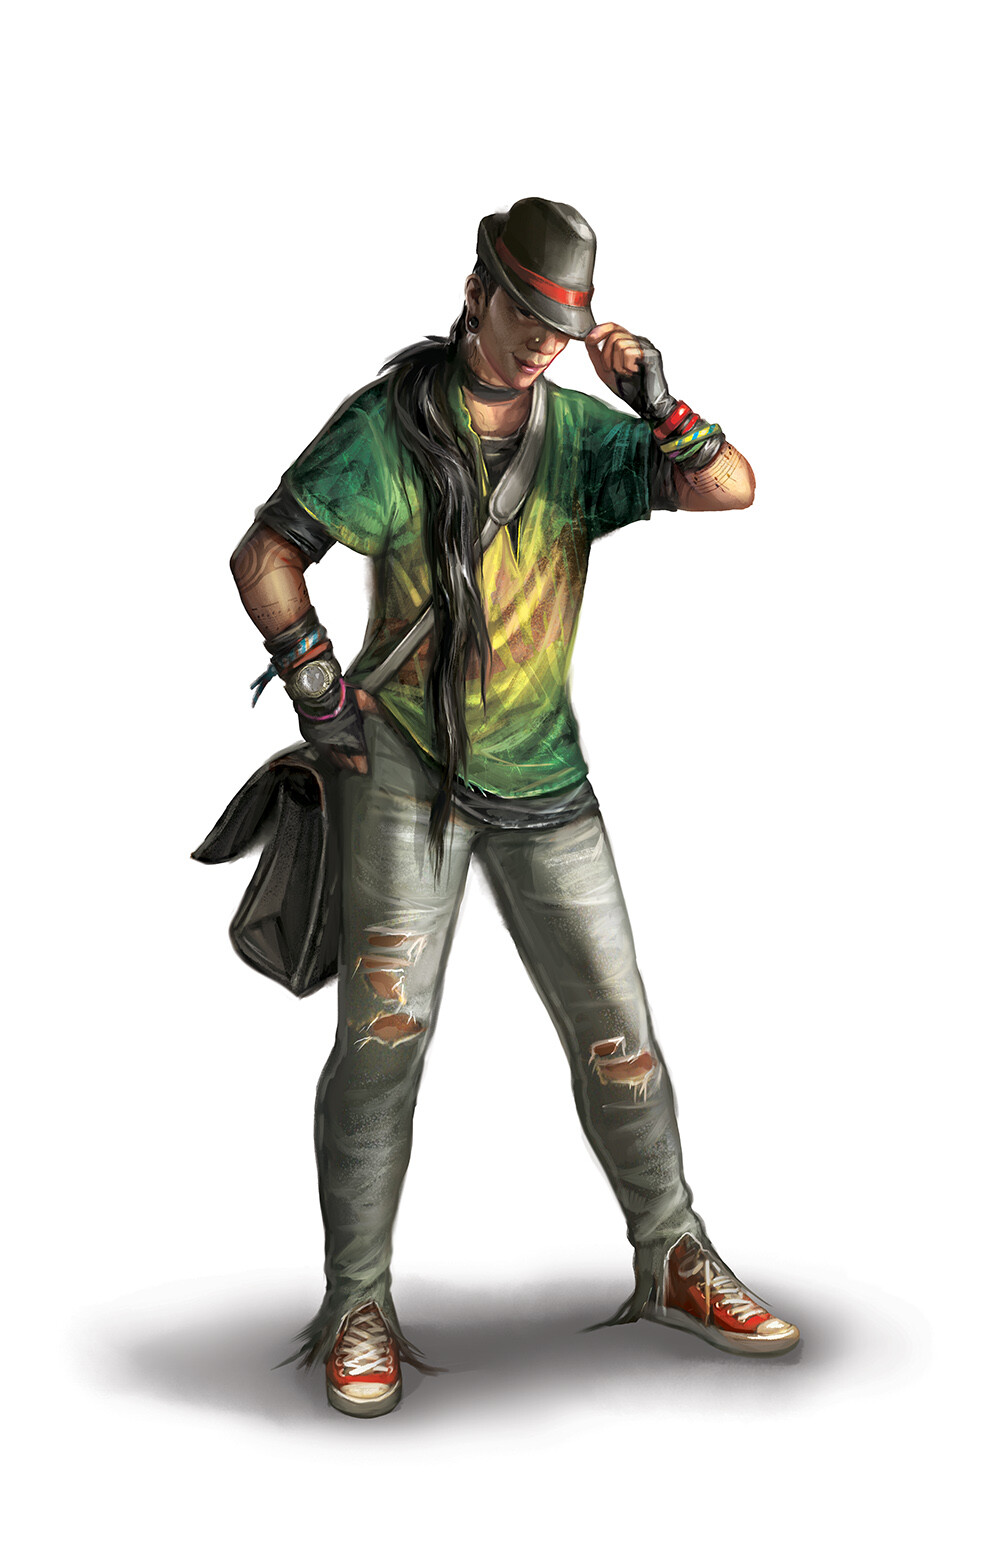 Riley. Art description: recent vampire. Cool hat with a wide brim that's easy to hide your eyes when you look down. They're a charming deejay, pickpocket, musician, and drug dealer. Normally very friendly but can be intimidating if they want to be.